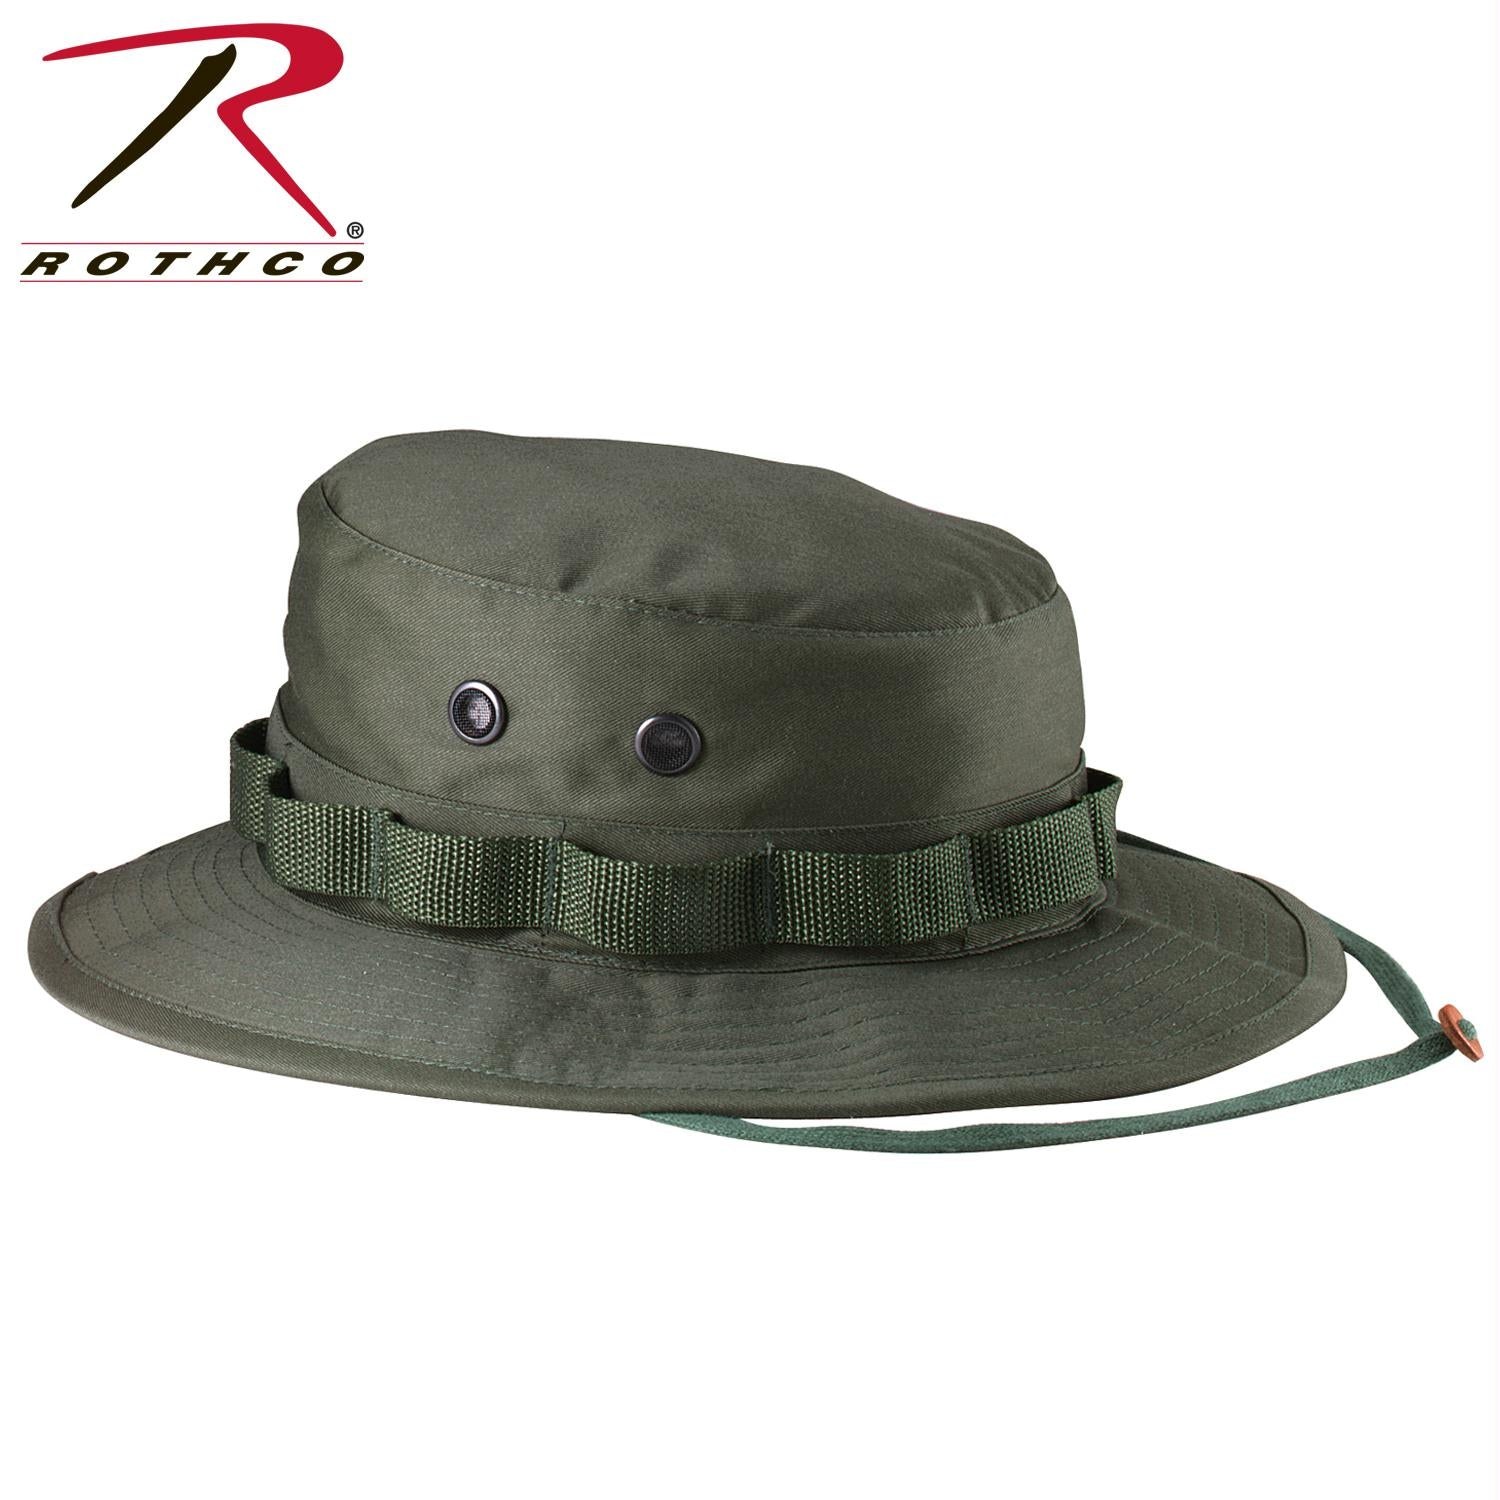 Rothco 100% Cotton Rip-Stop Boonie Hat - Olive Drab / 7